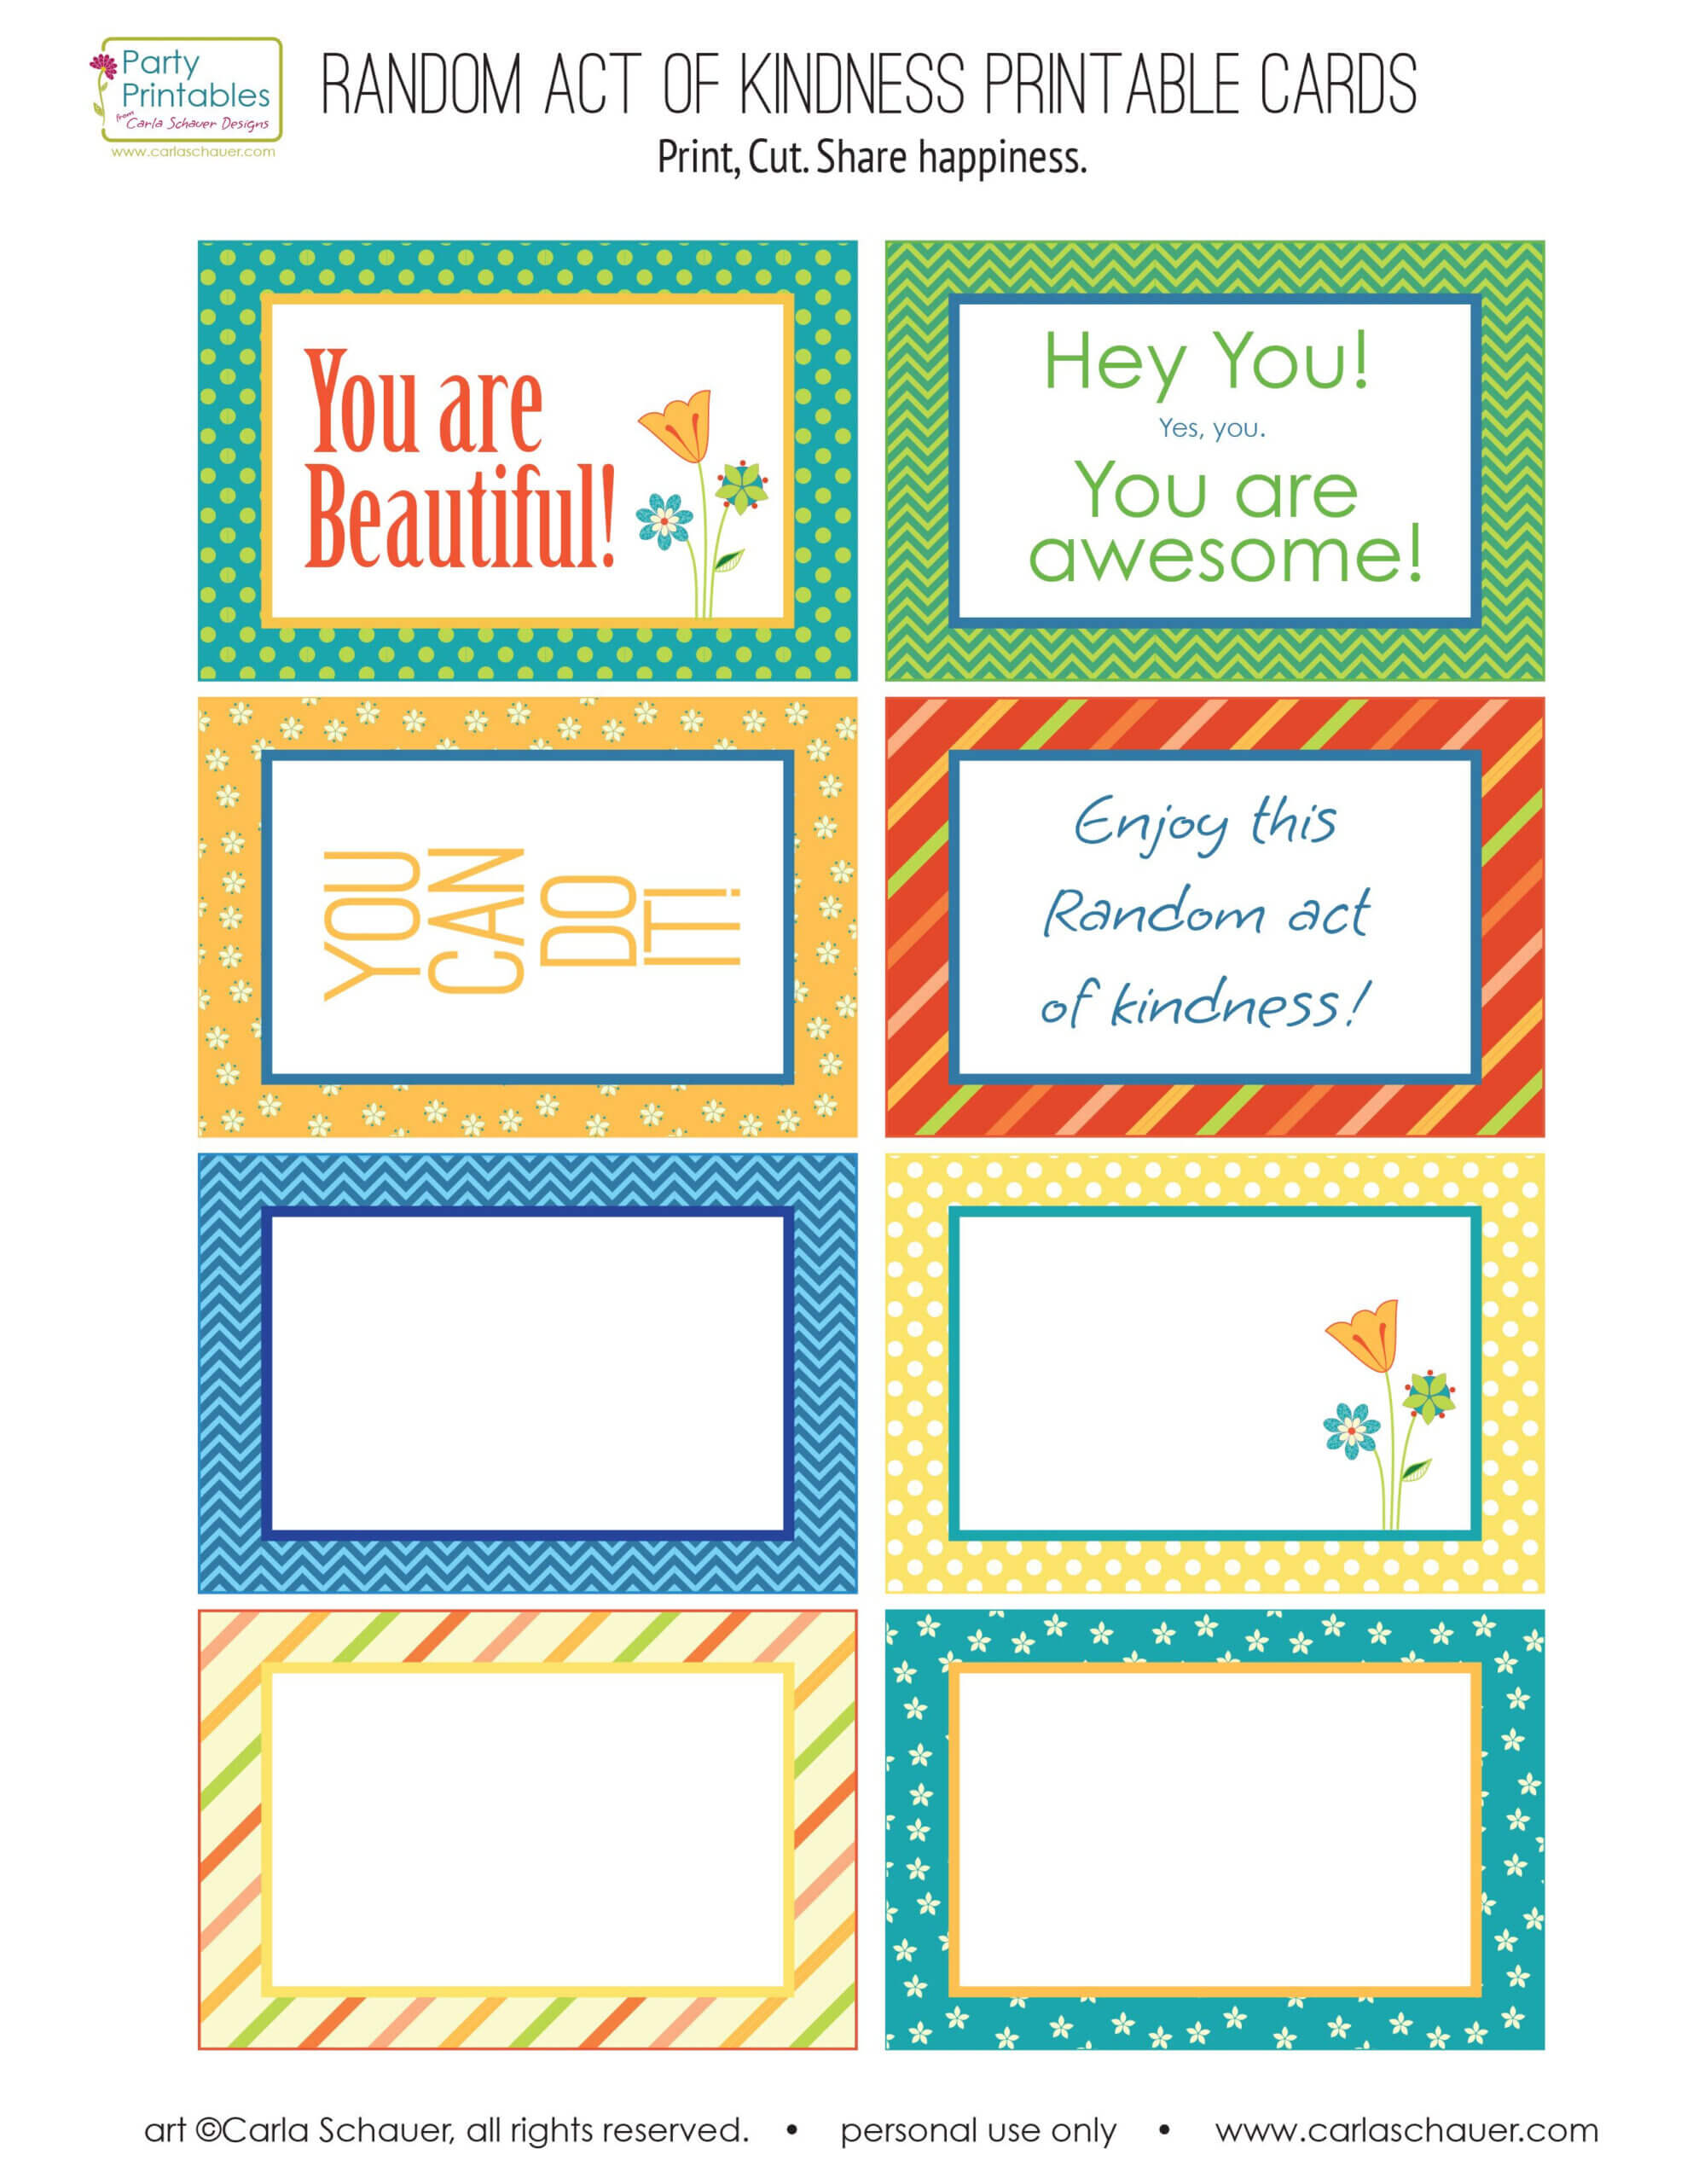 Random Act Of Kindness Printable Cards - Google Search Regarding Random Acts Of Kindness Cards Templates